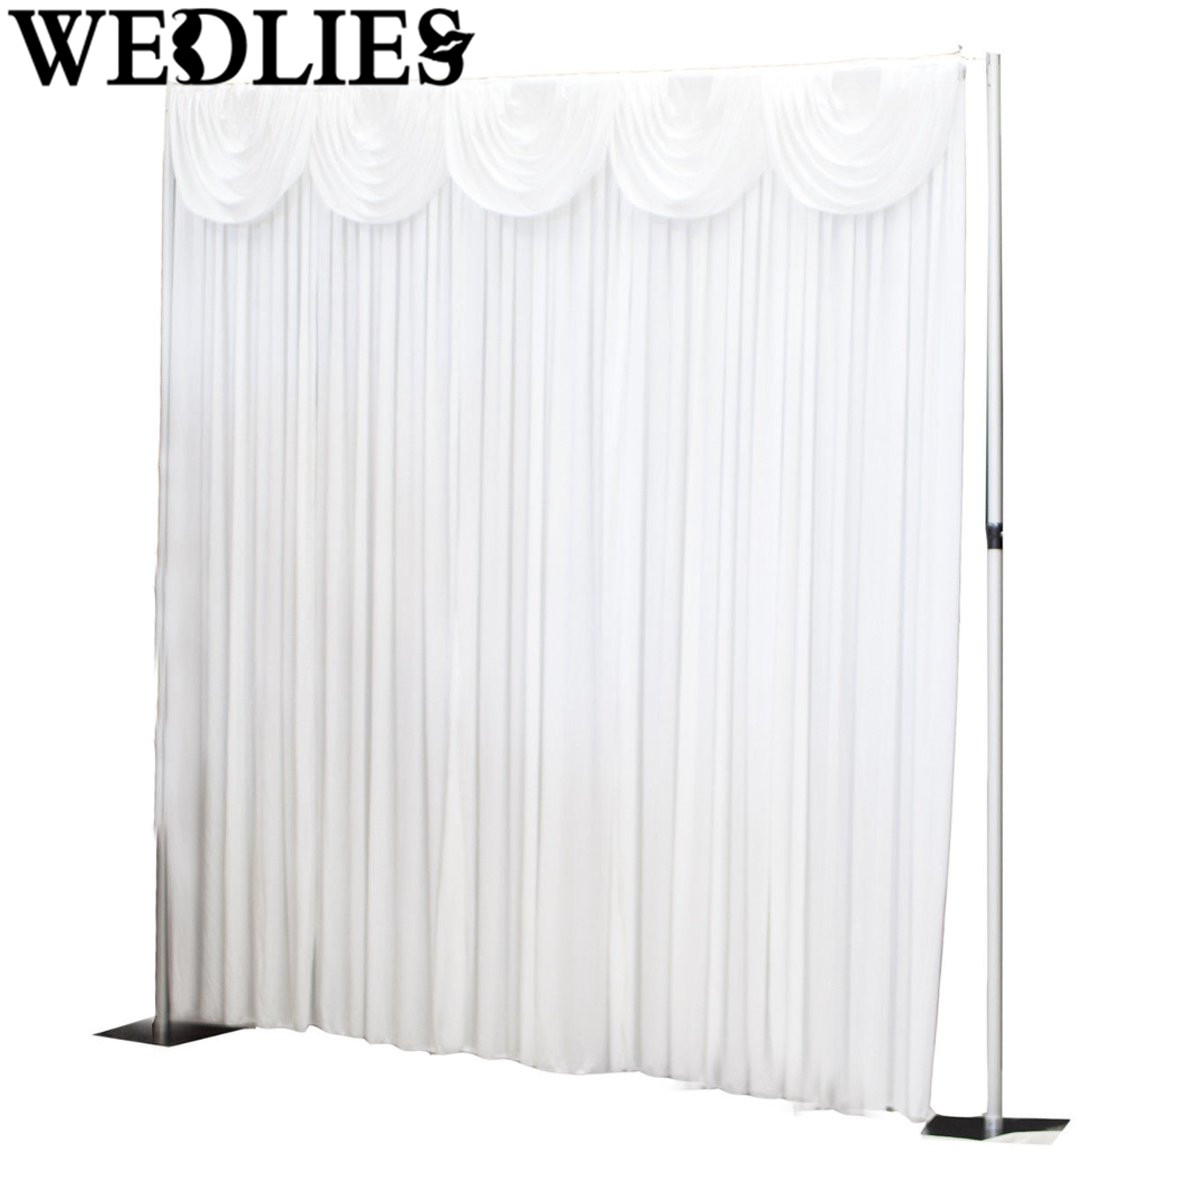 Cheap black stage curtains - White Wedding Stage Backdrop Photography Background Drape Valance Curtain Pendant Wedding Party Events Decoration 300x300cm